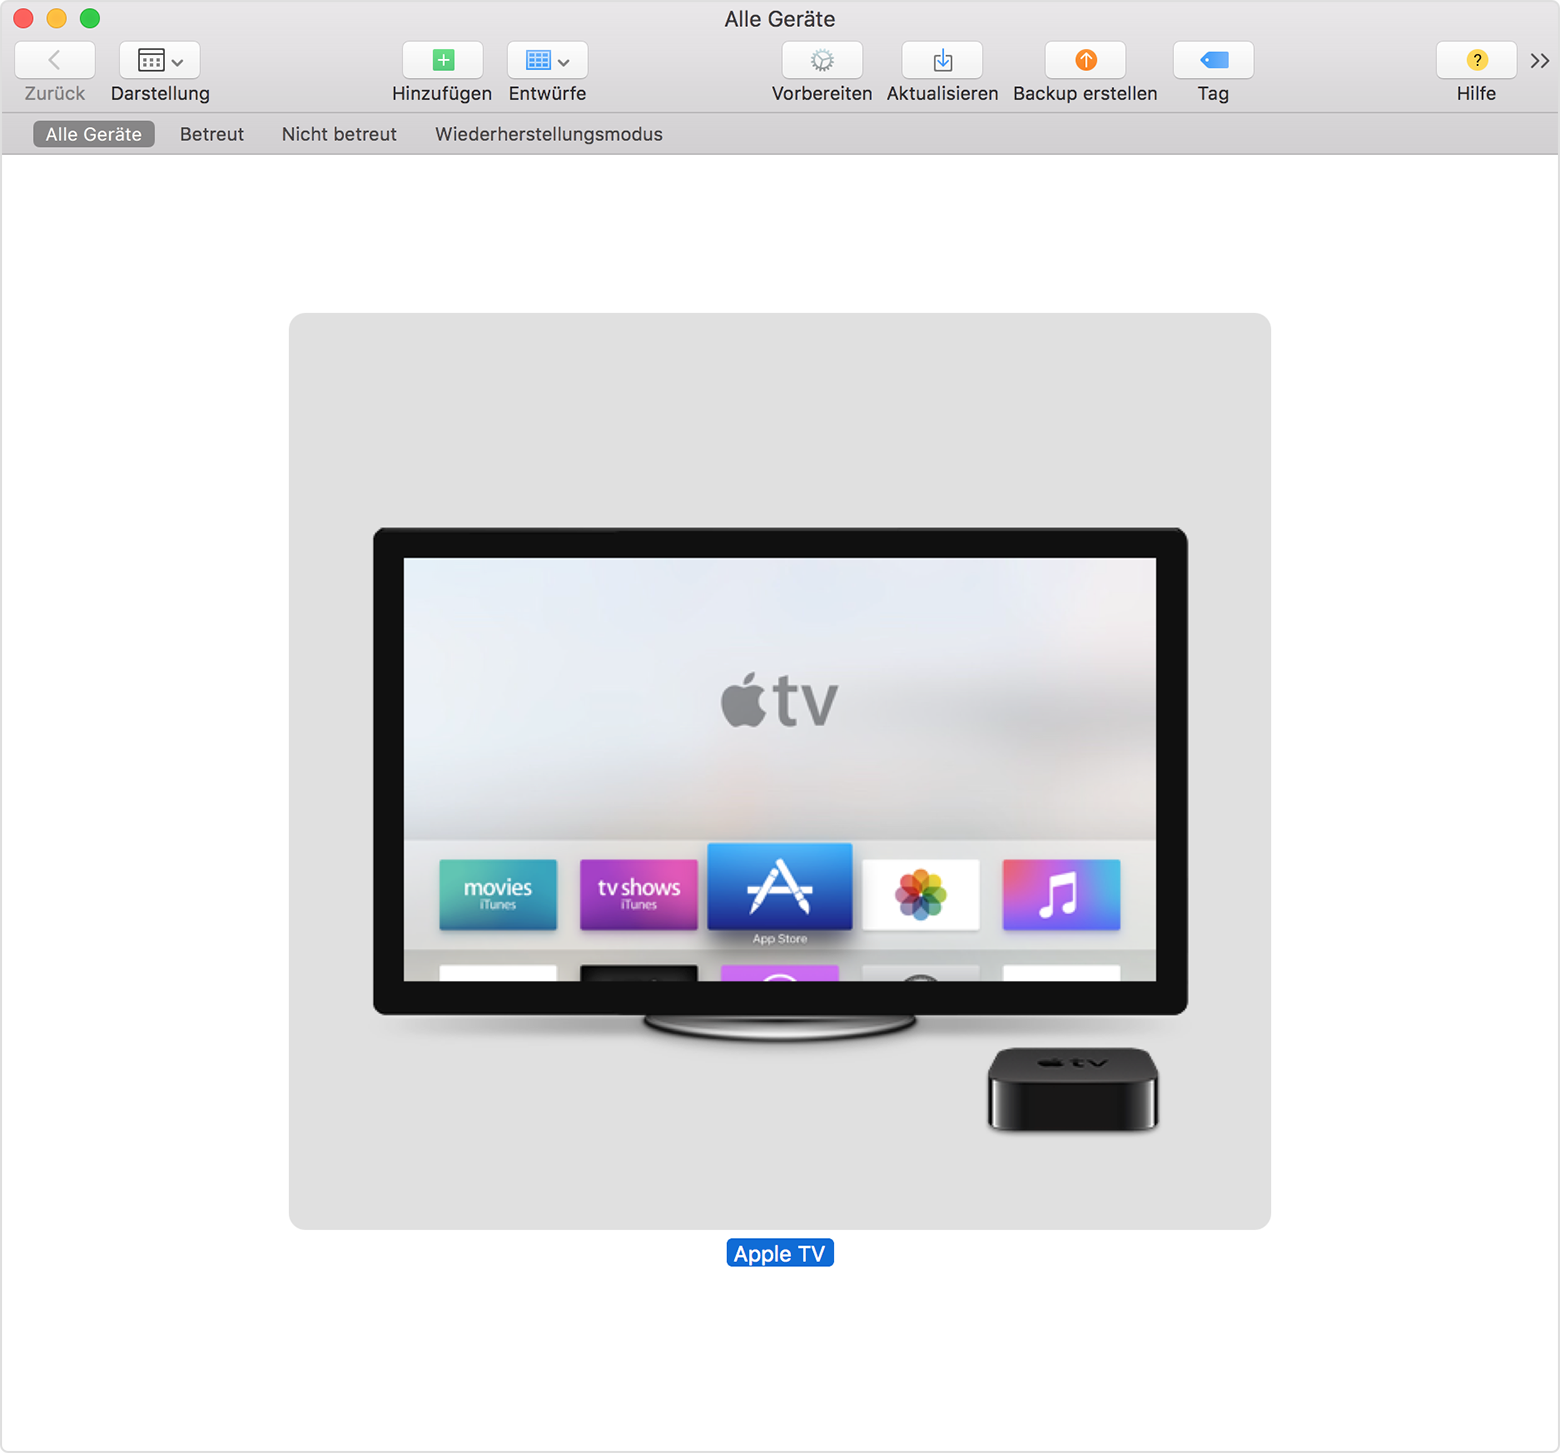 Apple TV per USB über Apple Configurator verbinden - Apple Support